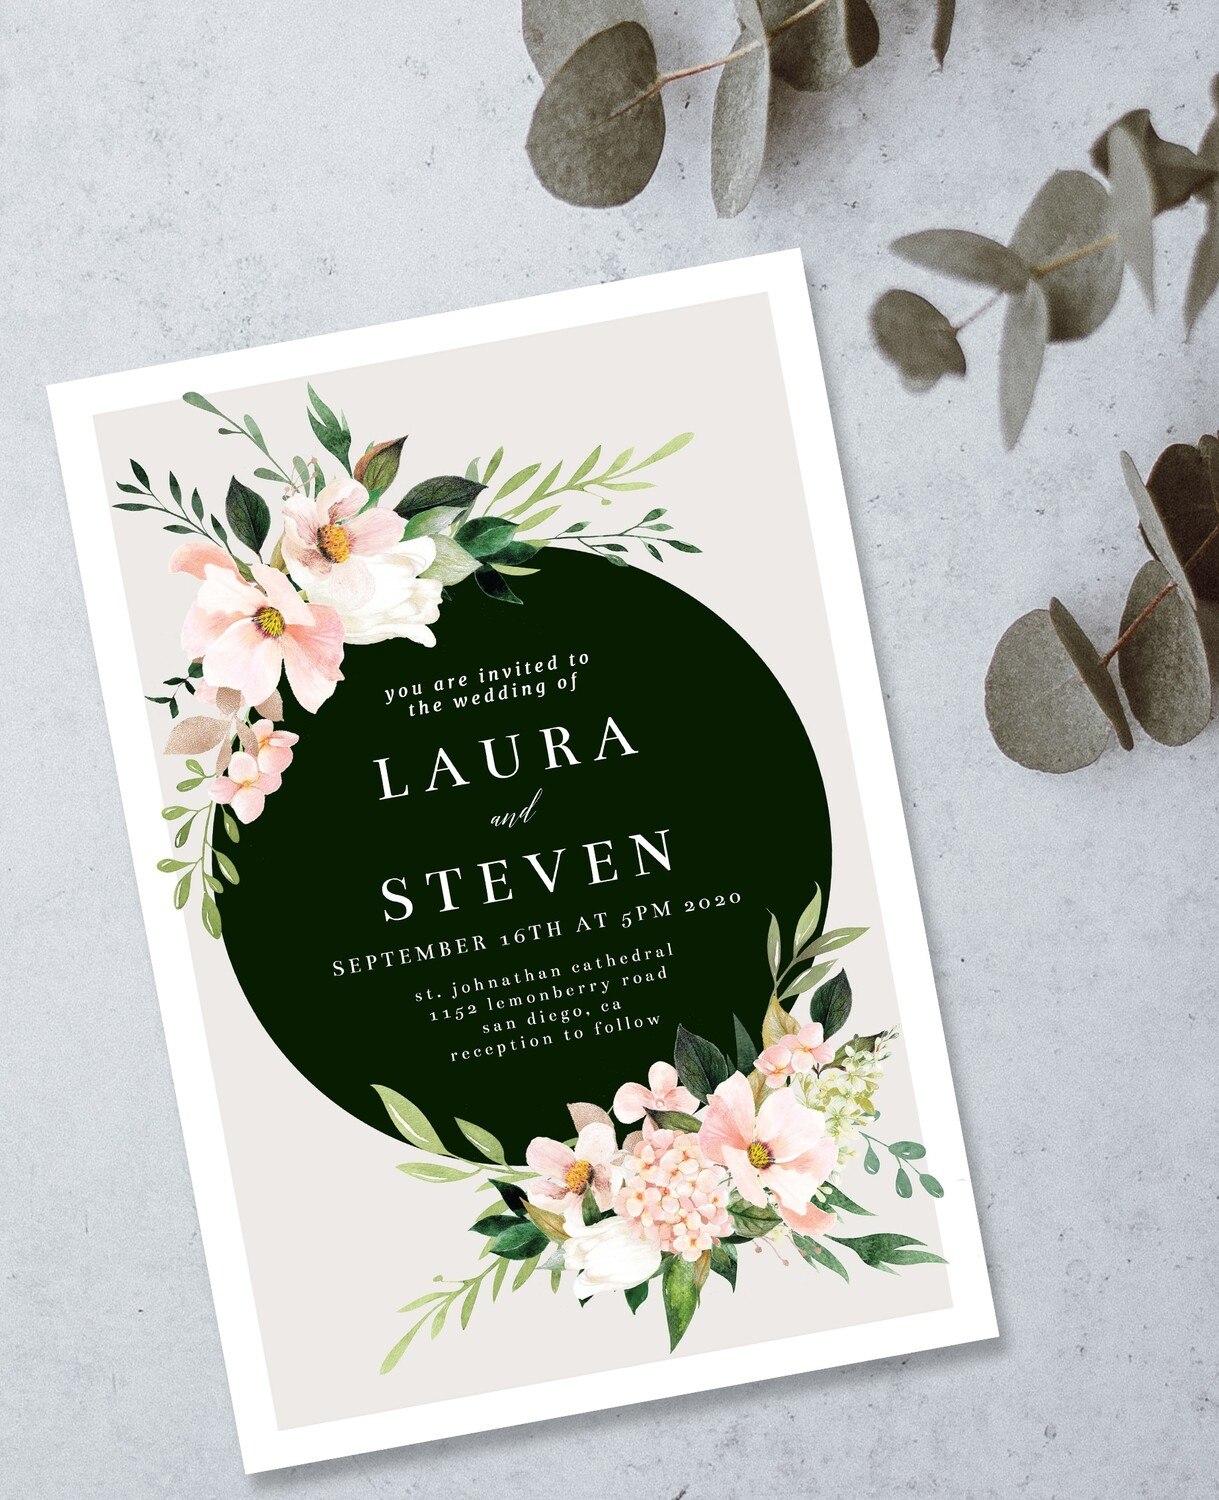 Personalized Floral Wedding Invite & Save The Date